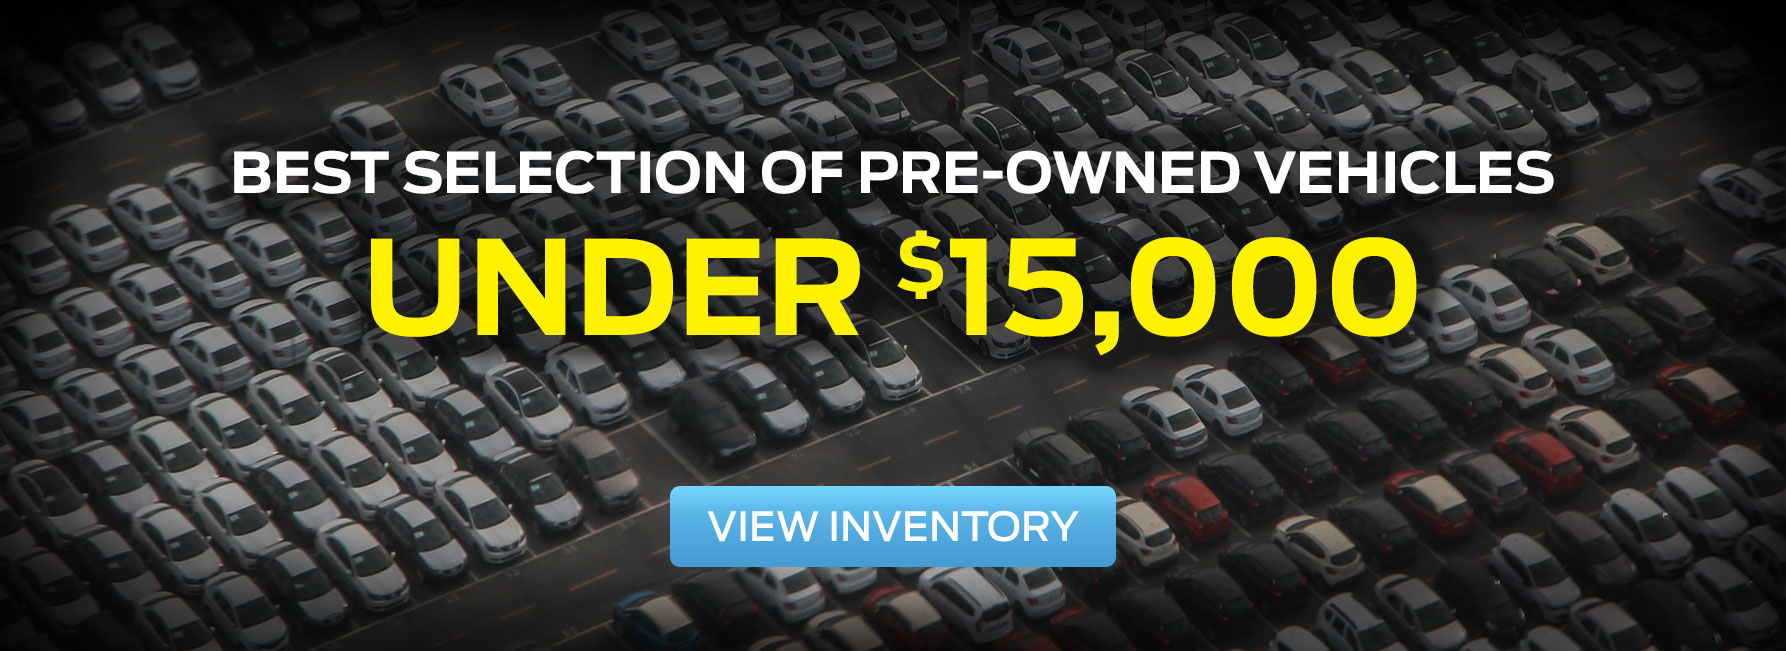 Pre-Owned Inventory under 15k Desktop